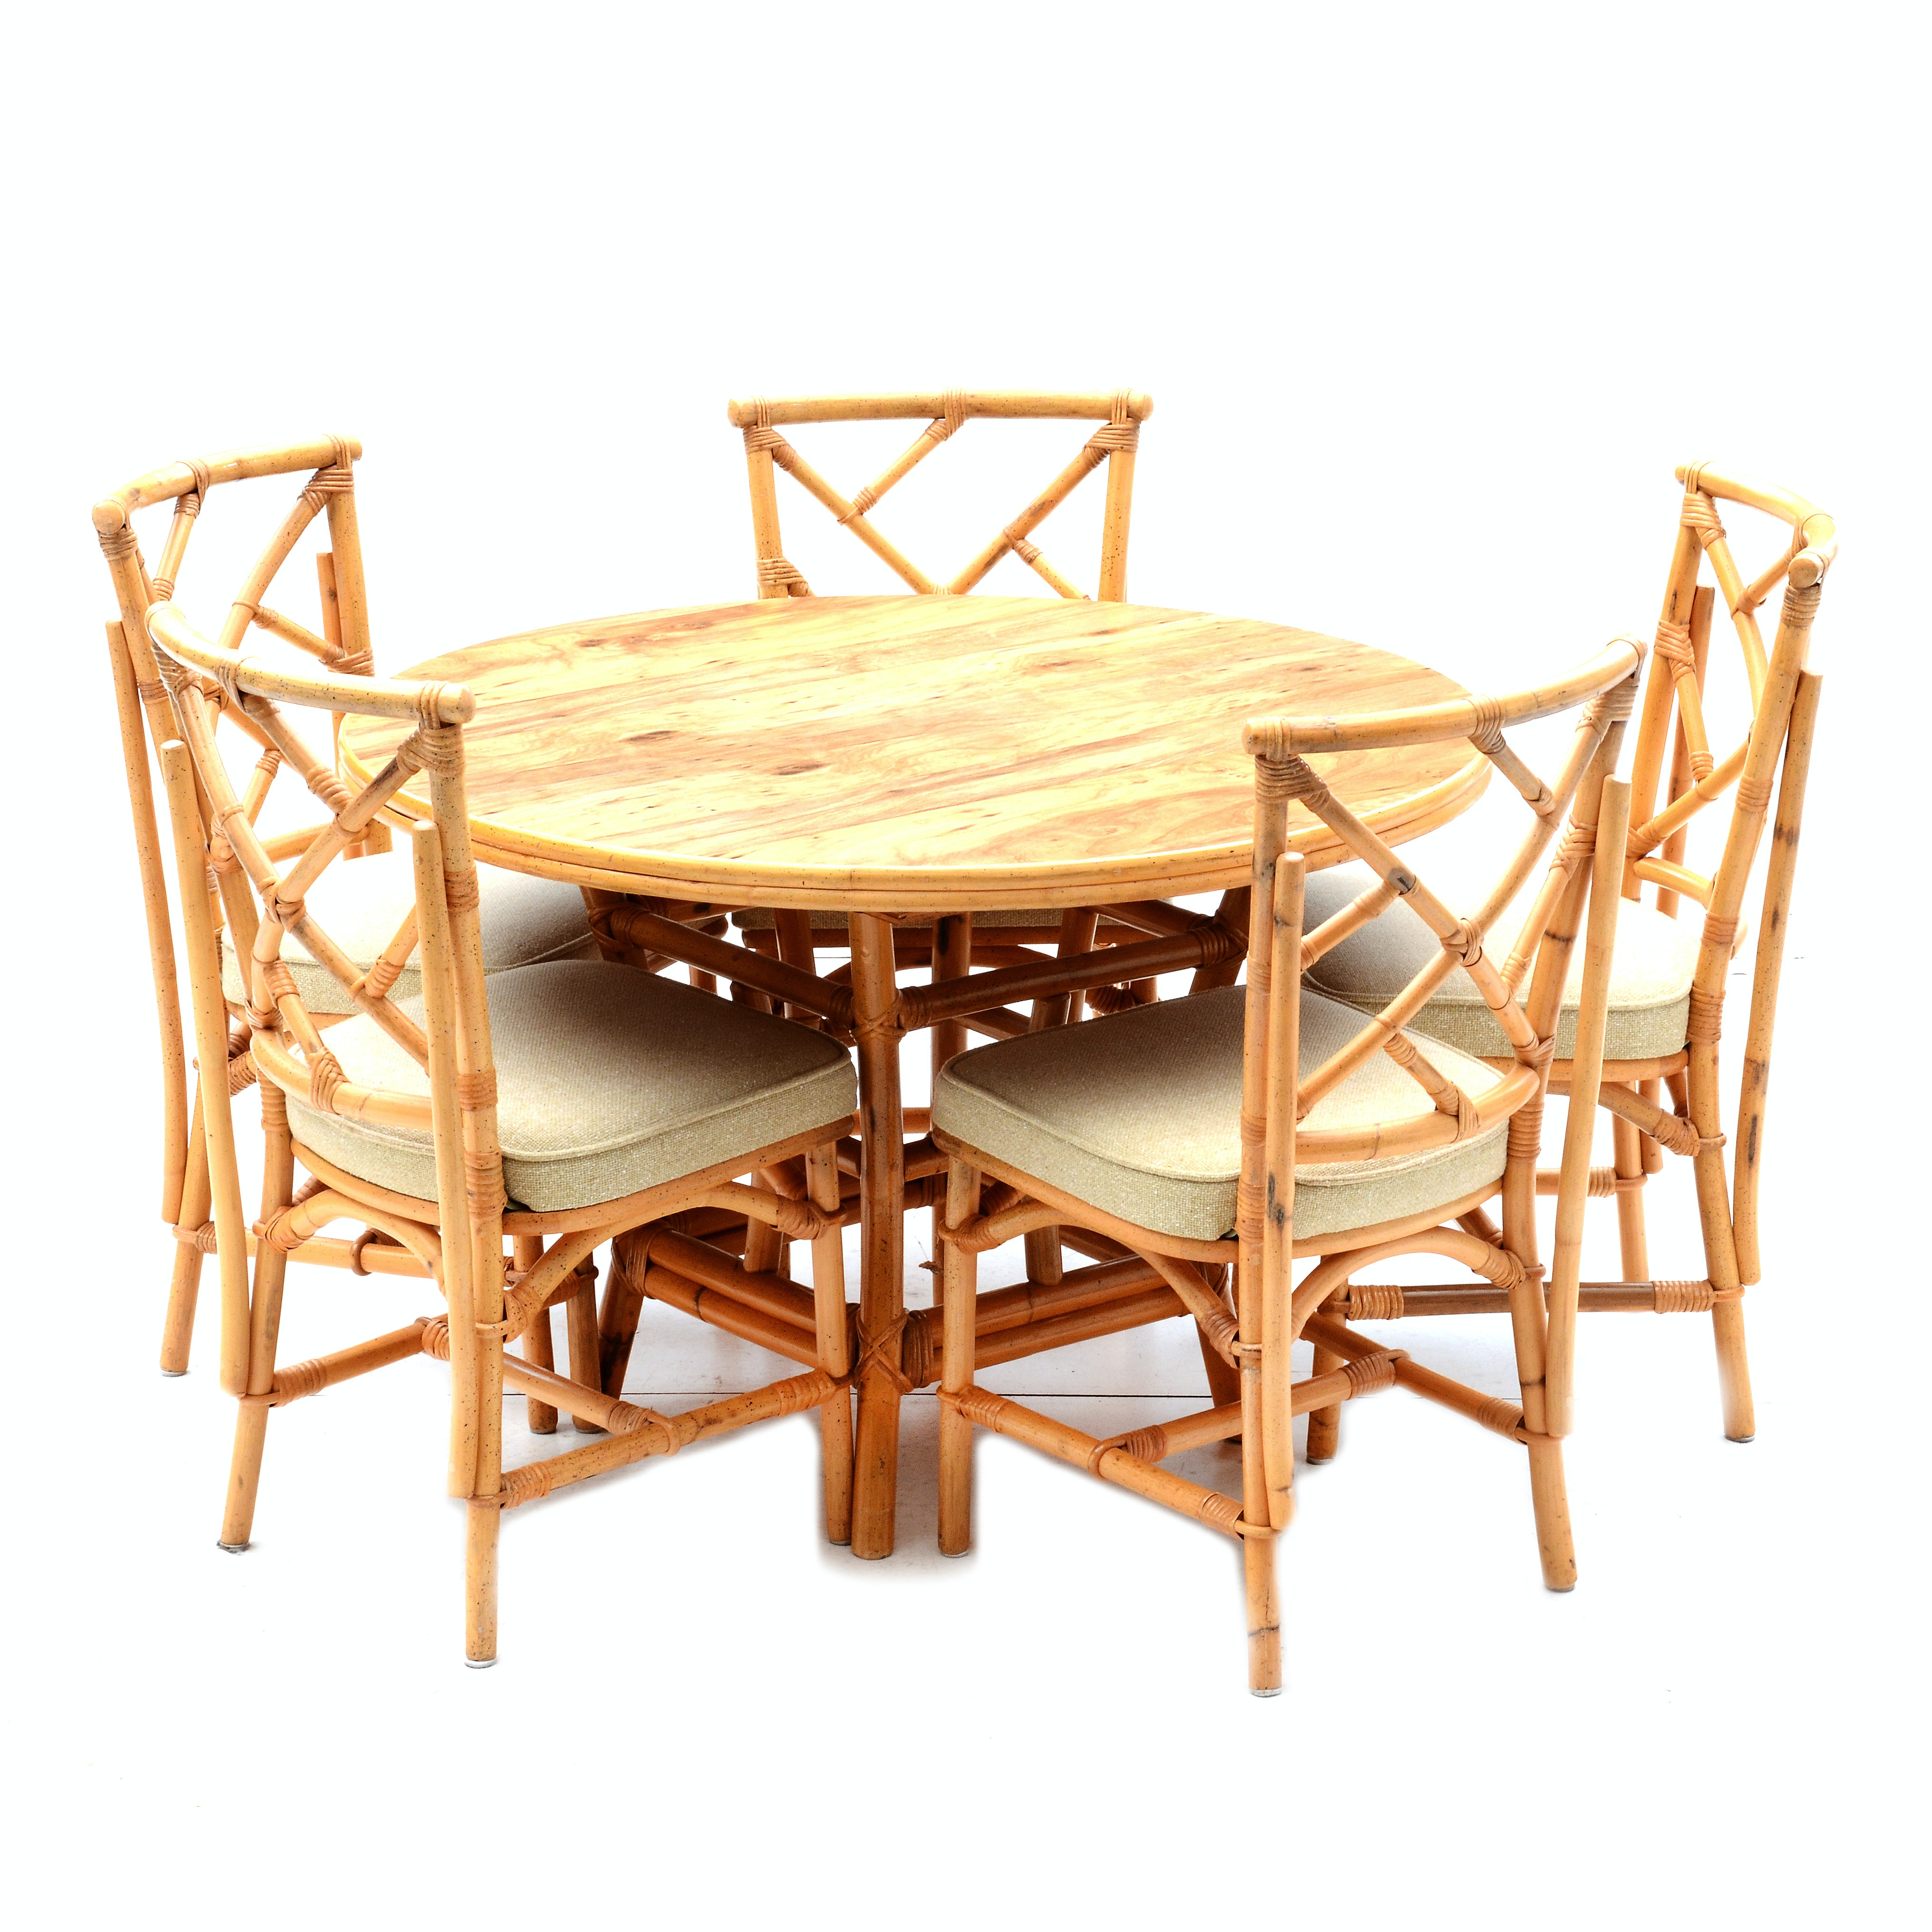 Bamboo Table and Chairs Set